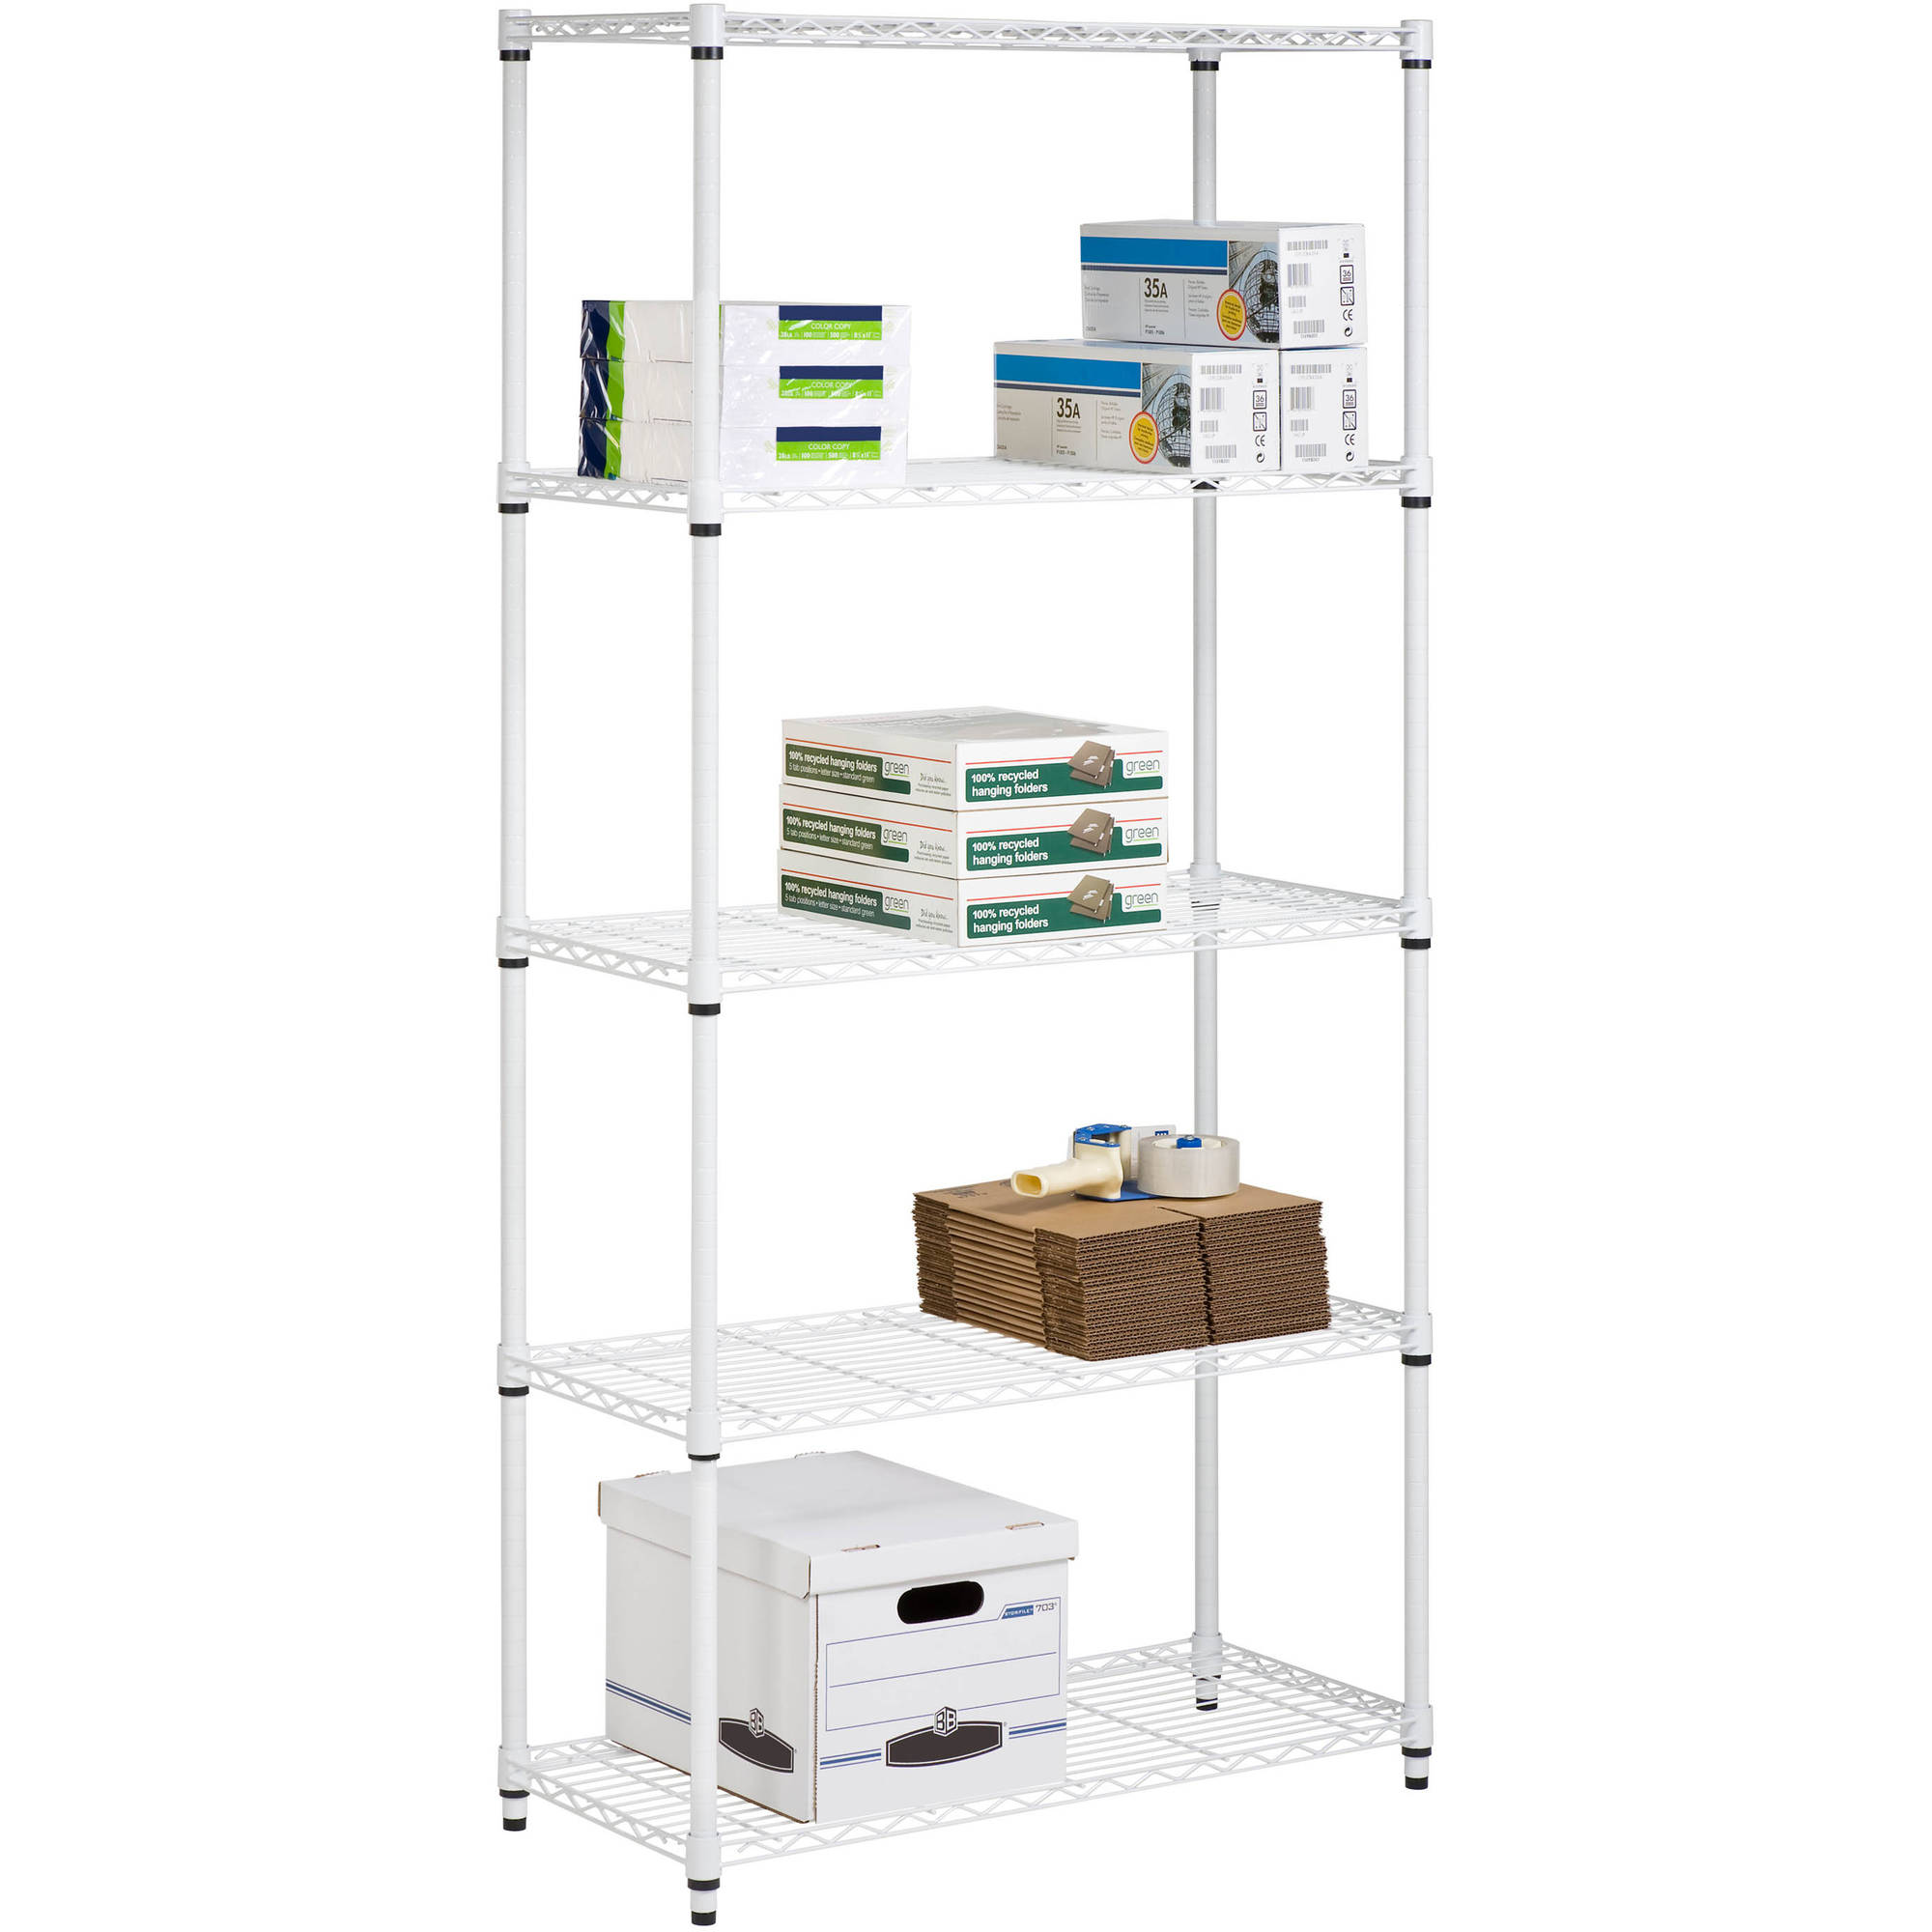 Marvelous Honey Can Do 5 Shelf Steel Storage Shelving Unit, White   Walmart.com